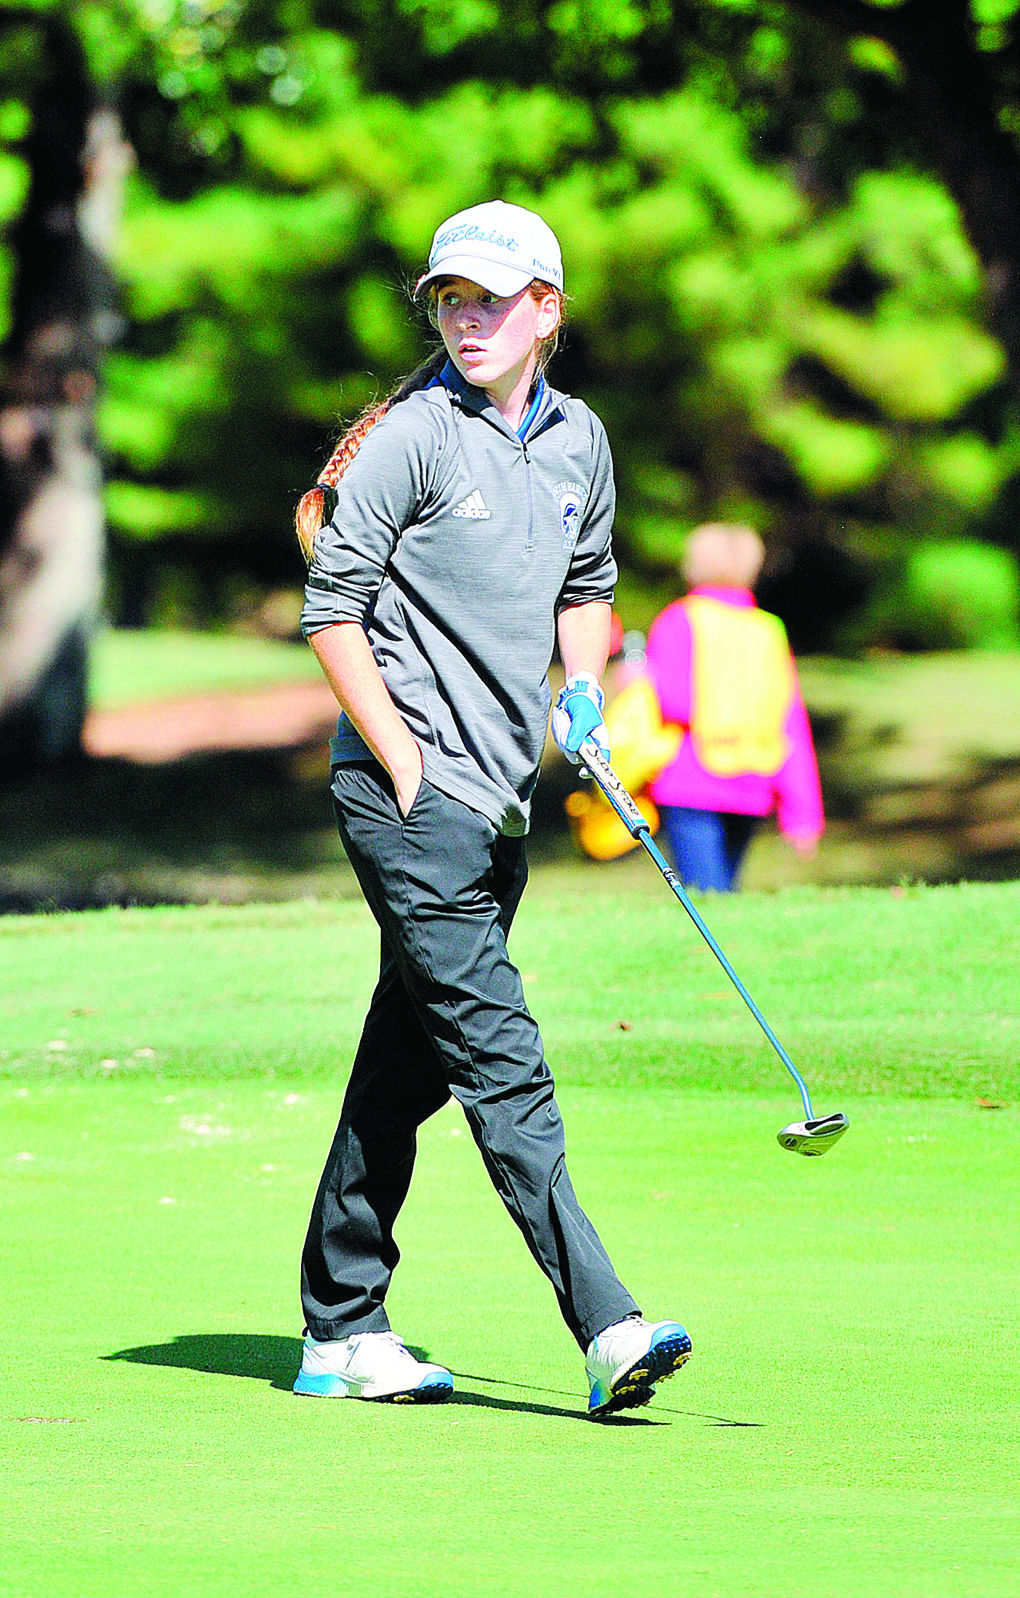 Girls' State Golf: North in third place, Scherer in fifth place after Day 1